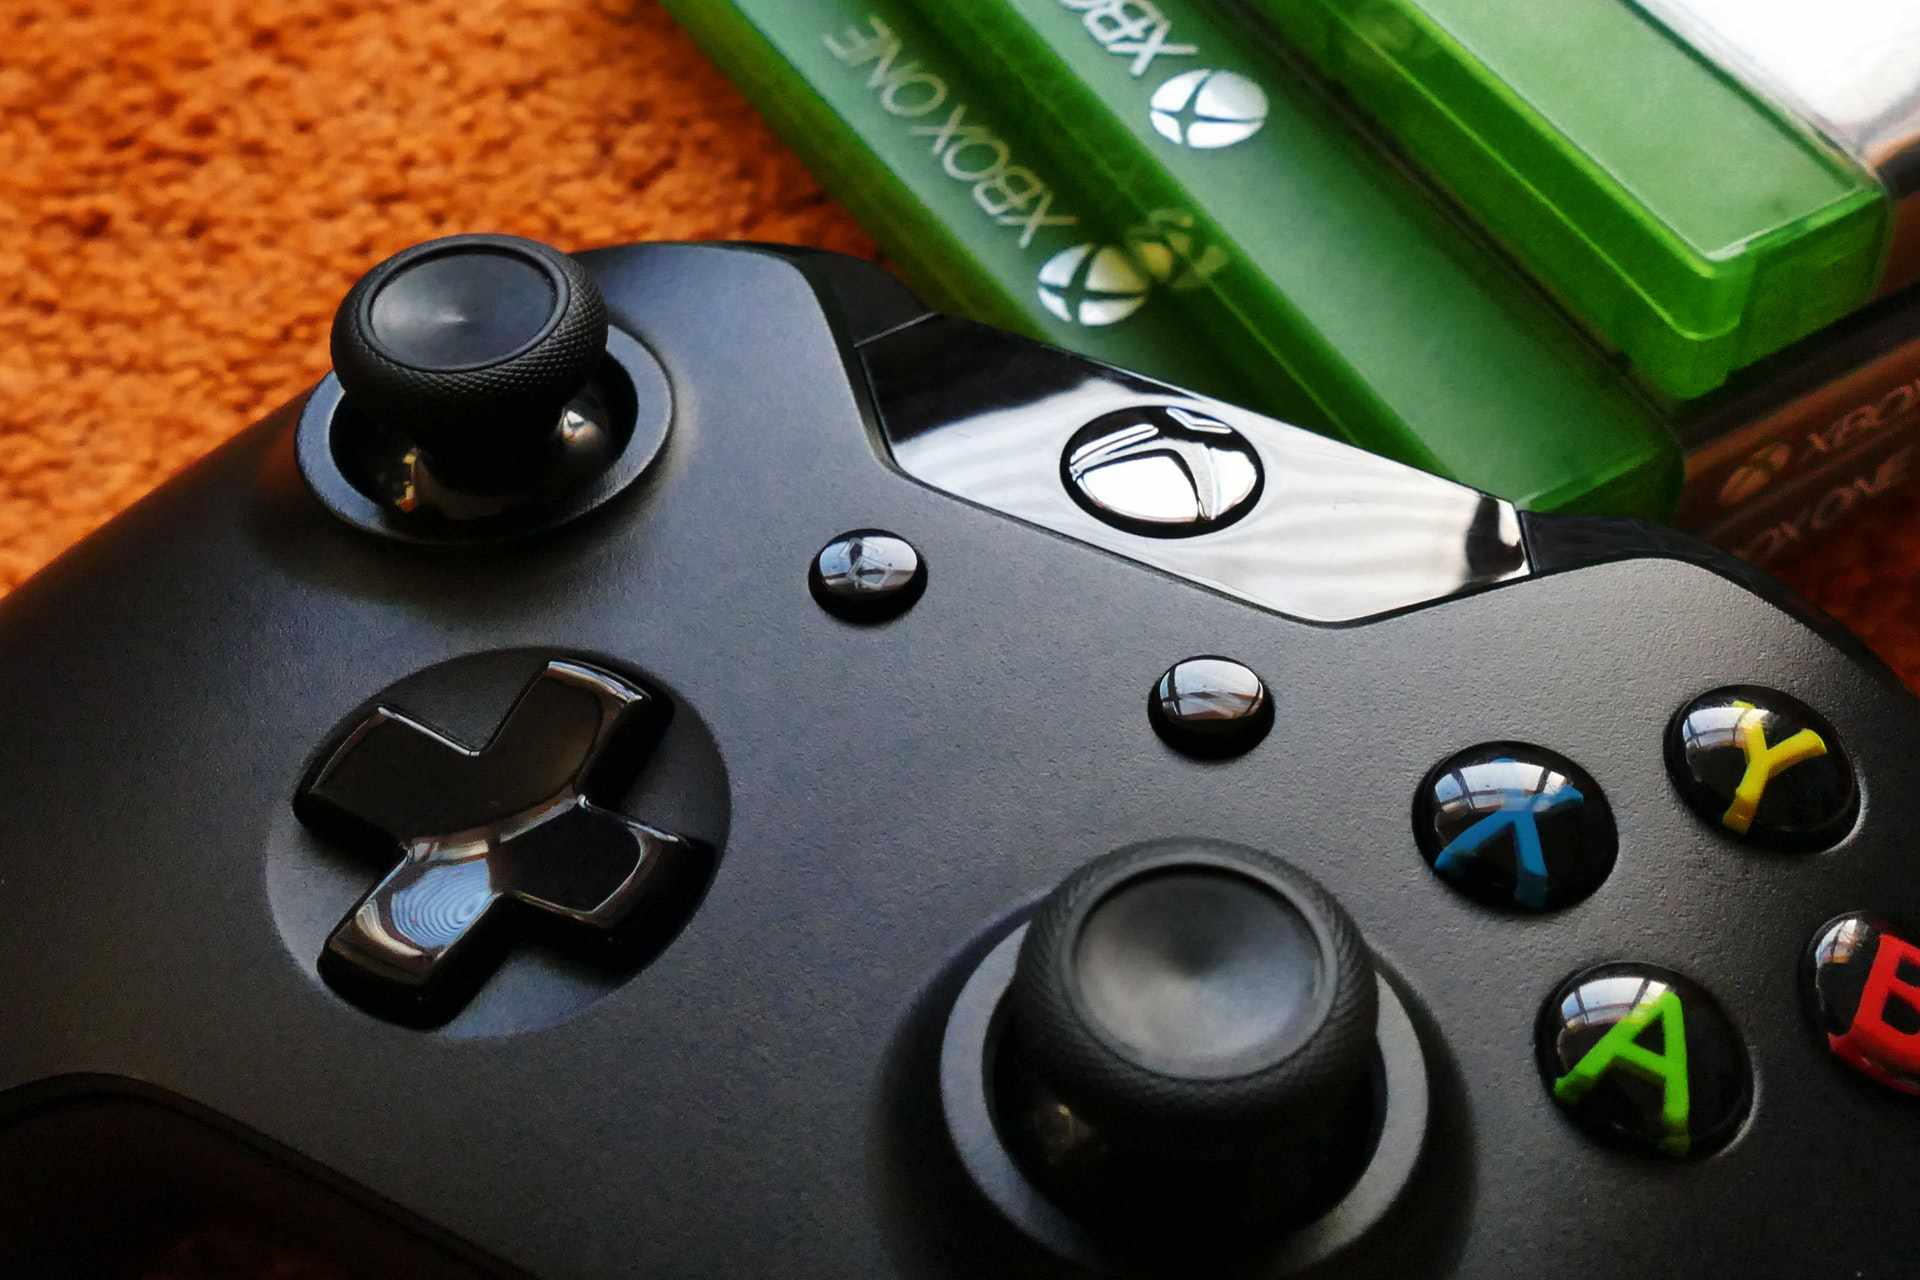 An Xbox controller with games in the background.